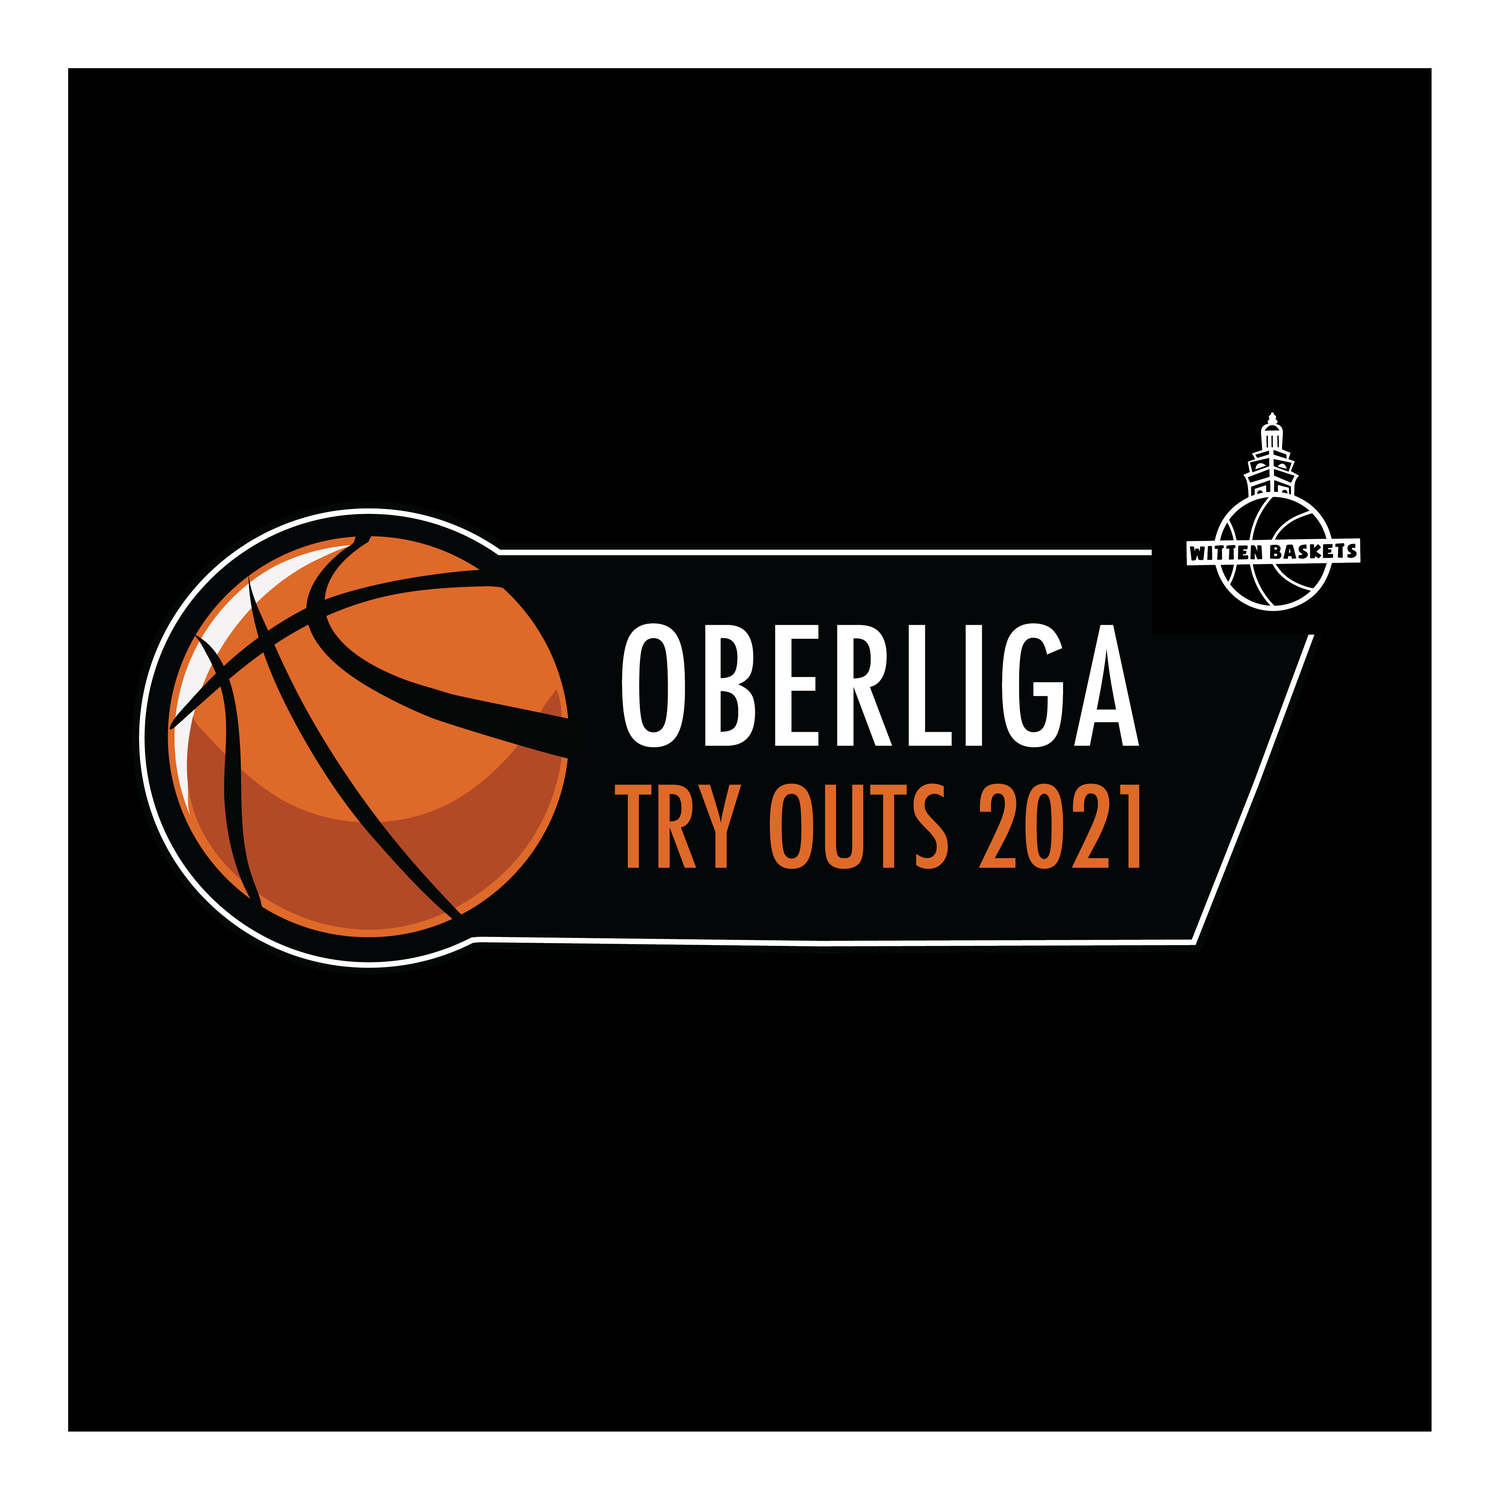 Oberliga Try-Outs 2021